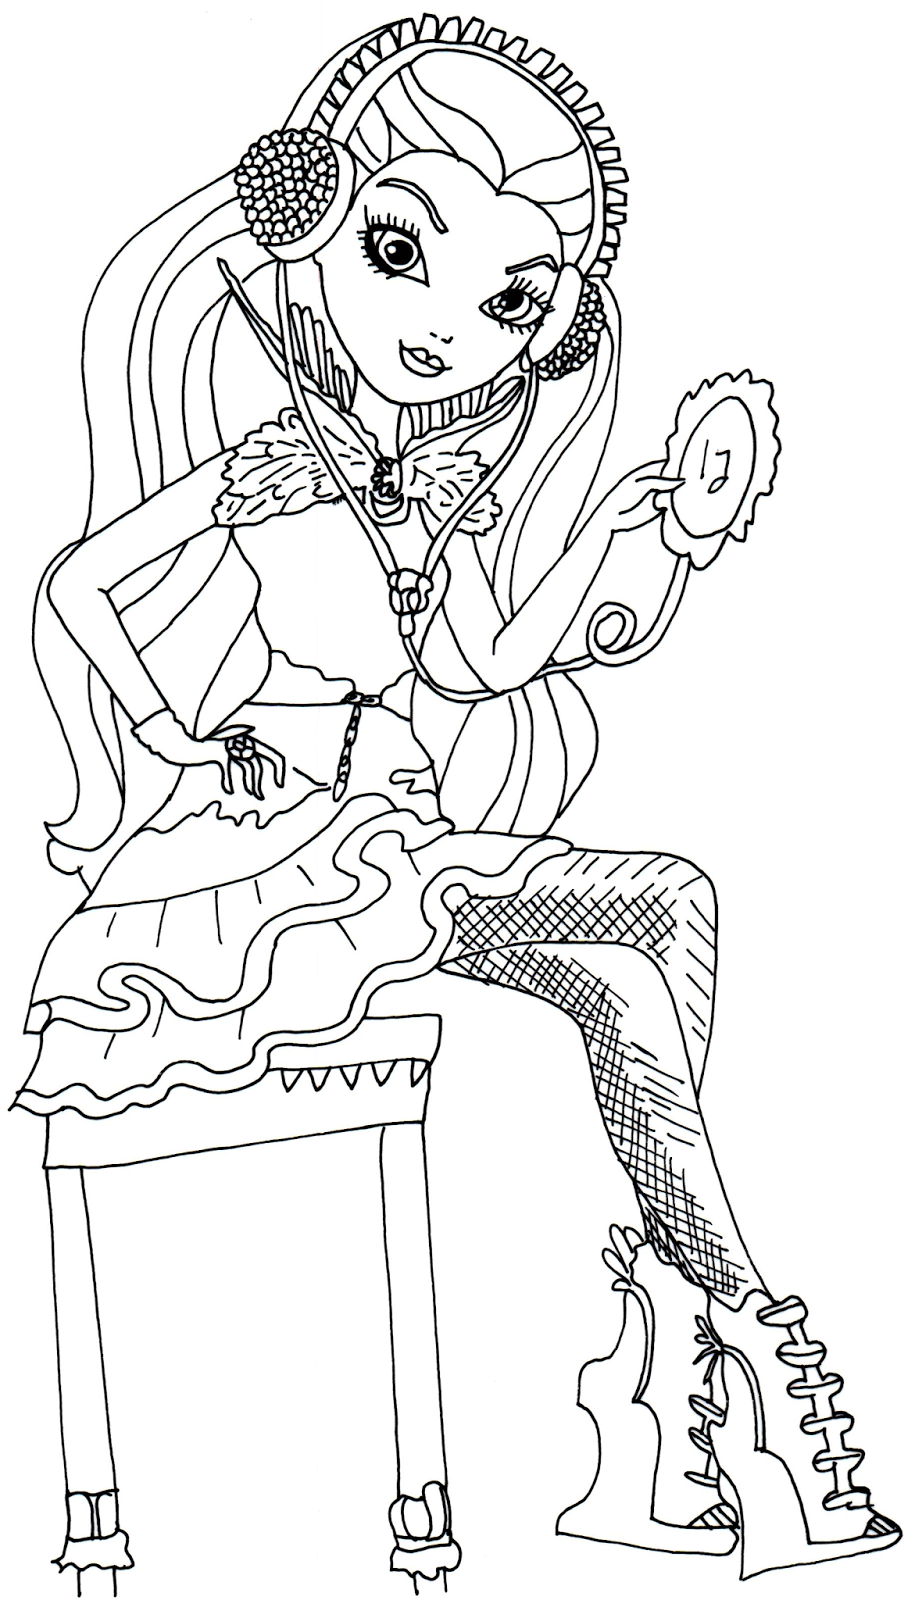 Printable coloring pages ever after high - Free Printable Ever After High Coloring Pages Raven Queen